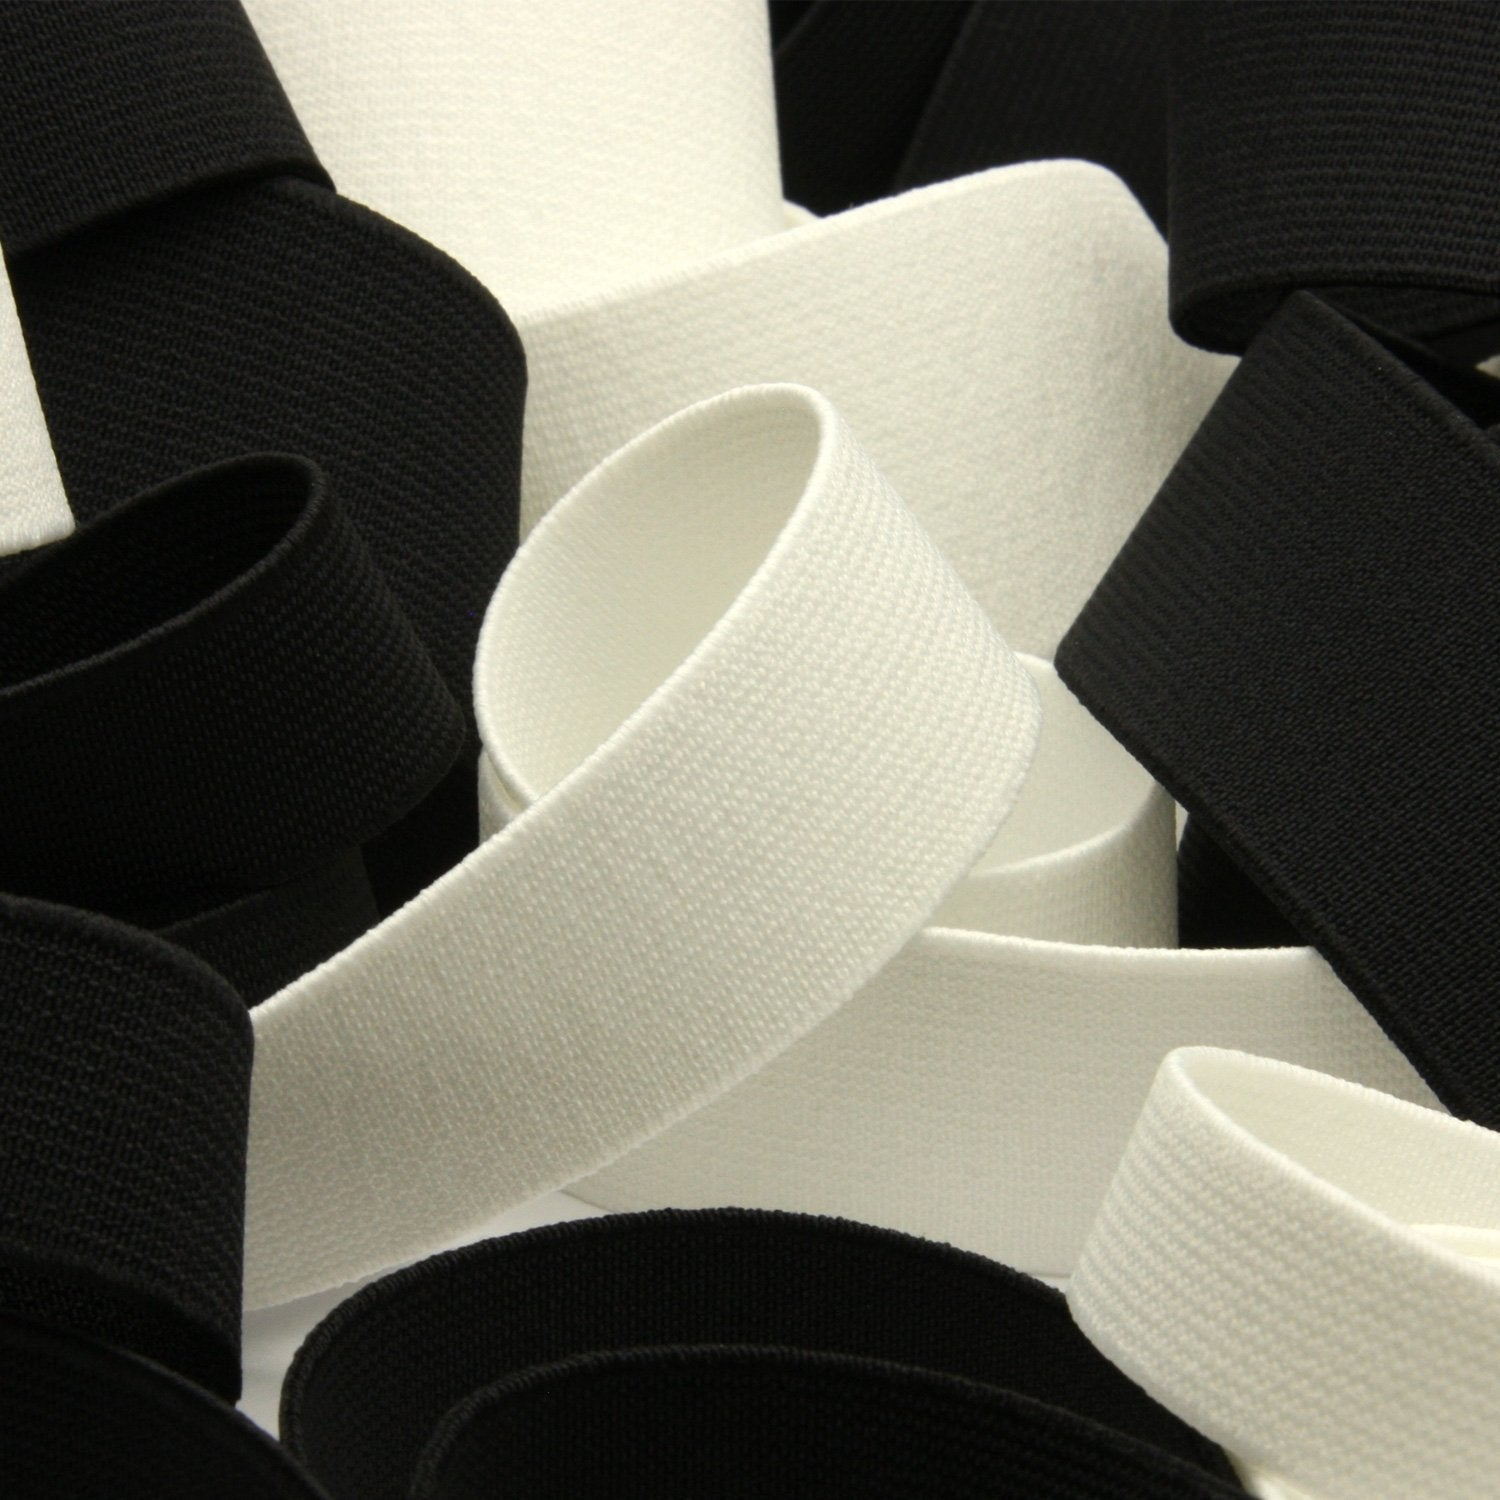 FUJIYAMA RIBBON [Wholesale] Hard Type Inside Belt 60mm 30 Meters Roll Off White